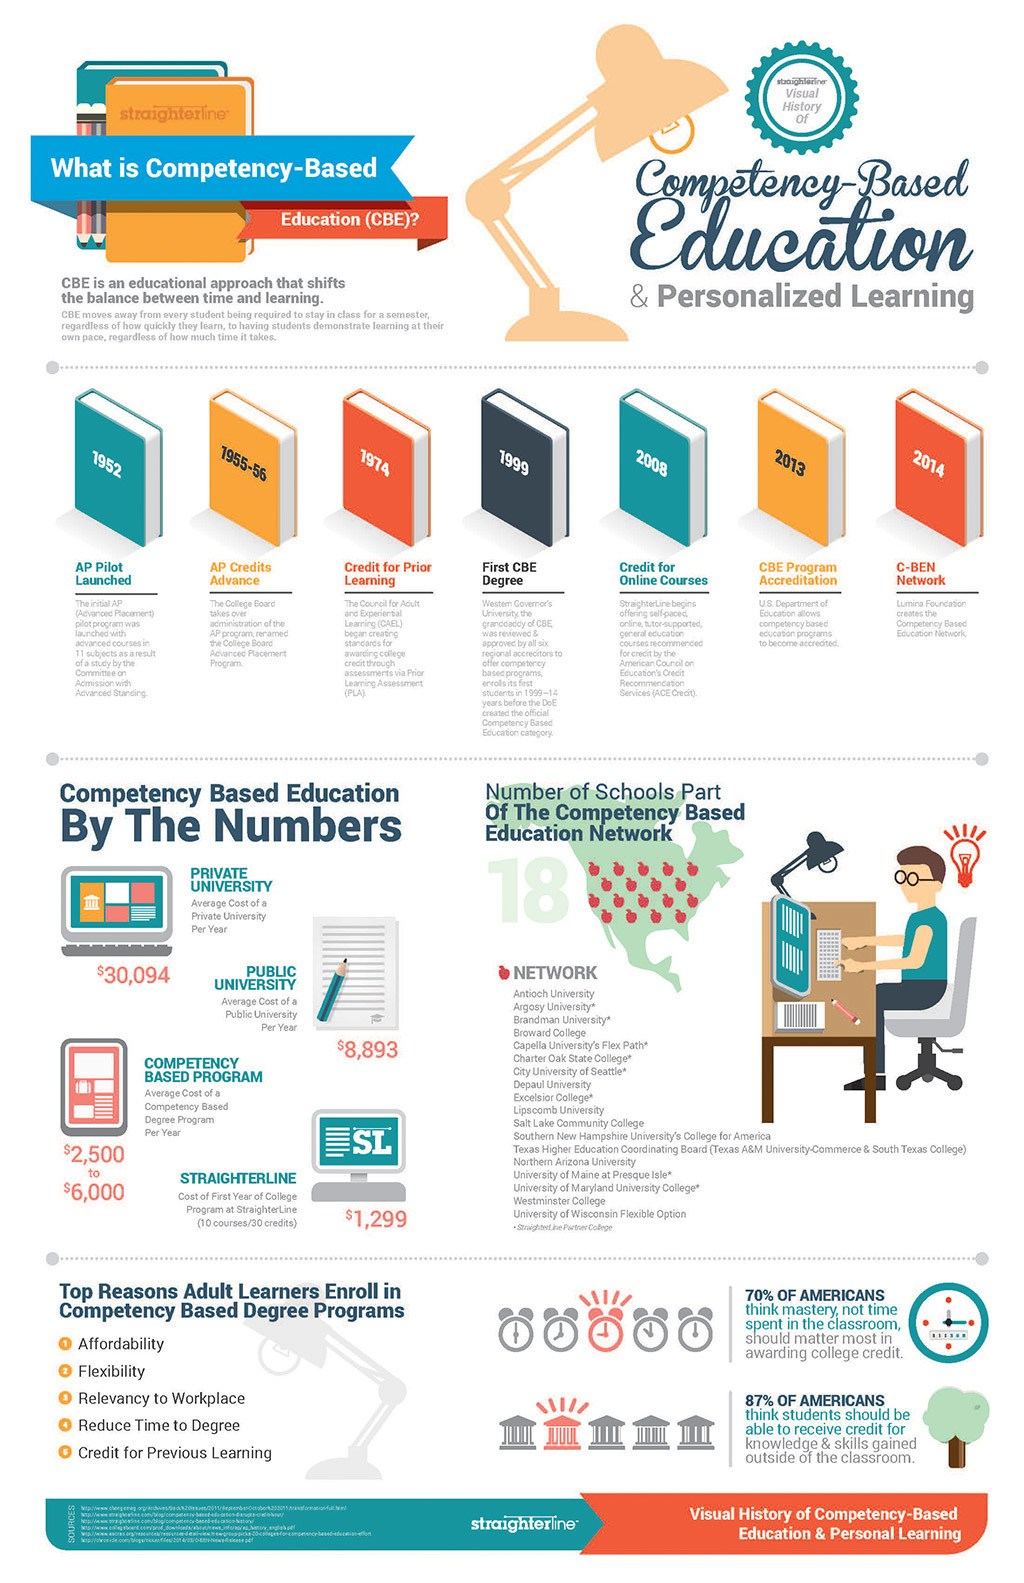 Credit Solution Program Learn How To Improve Your Credit >> The Guide to Competency Based Education Infographic - e ...